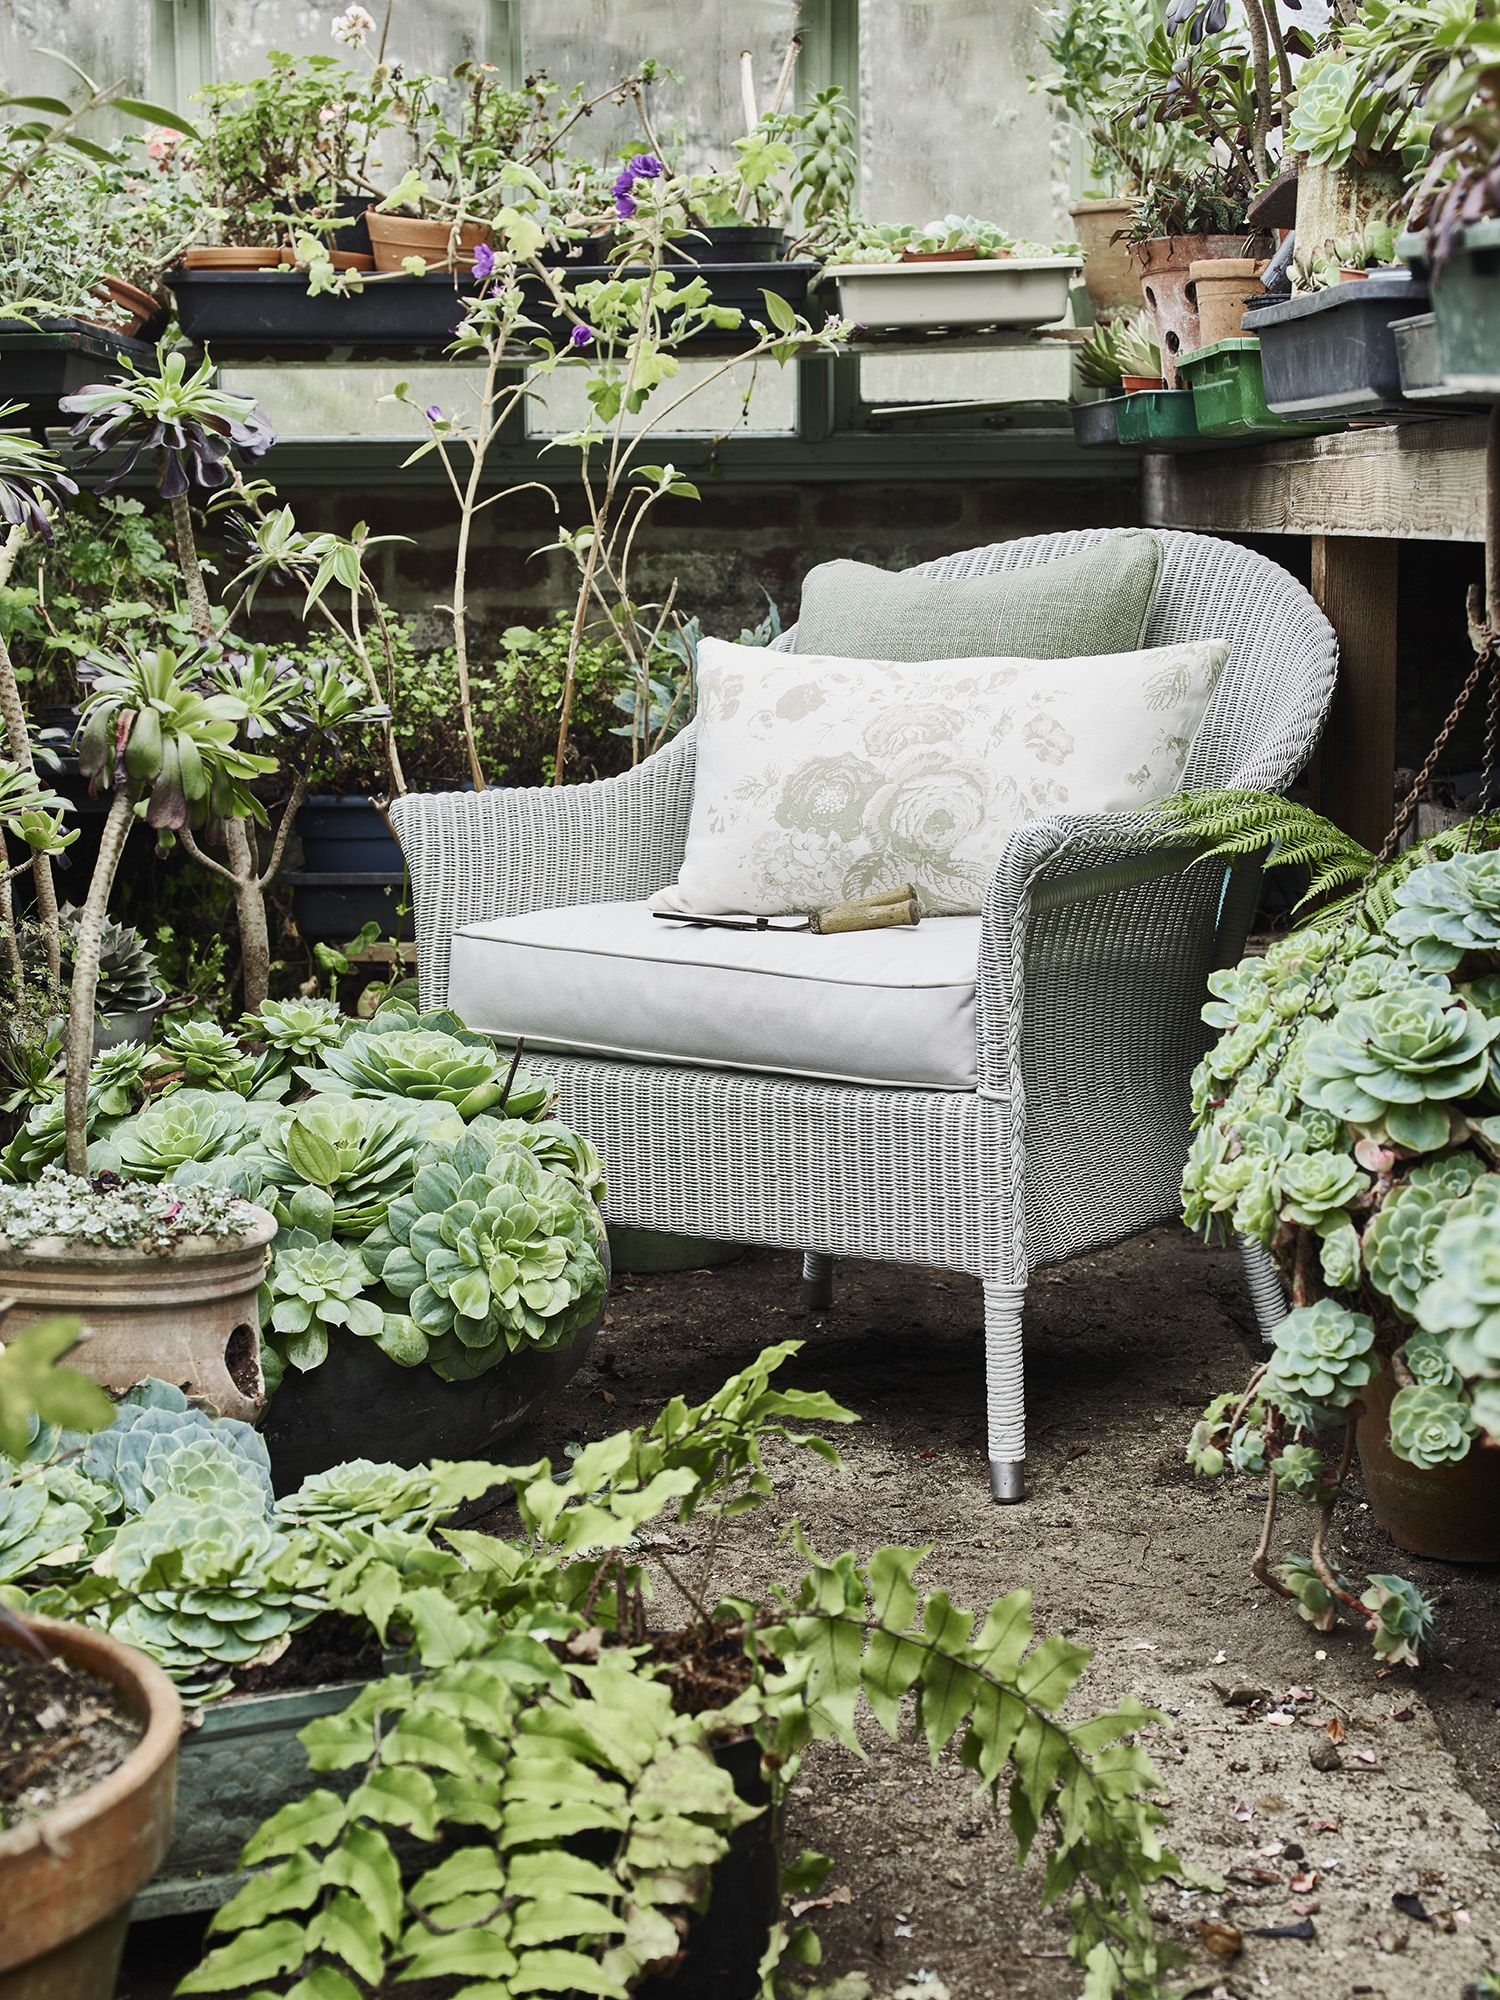 Neptune Chatto lloyd loom armchair | Forgotten & Found: The Vintage ...